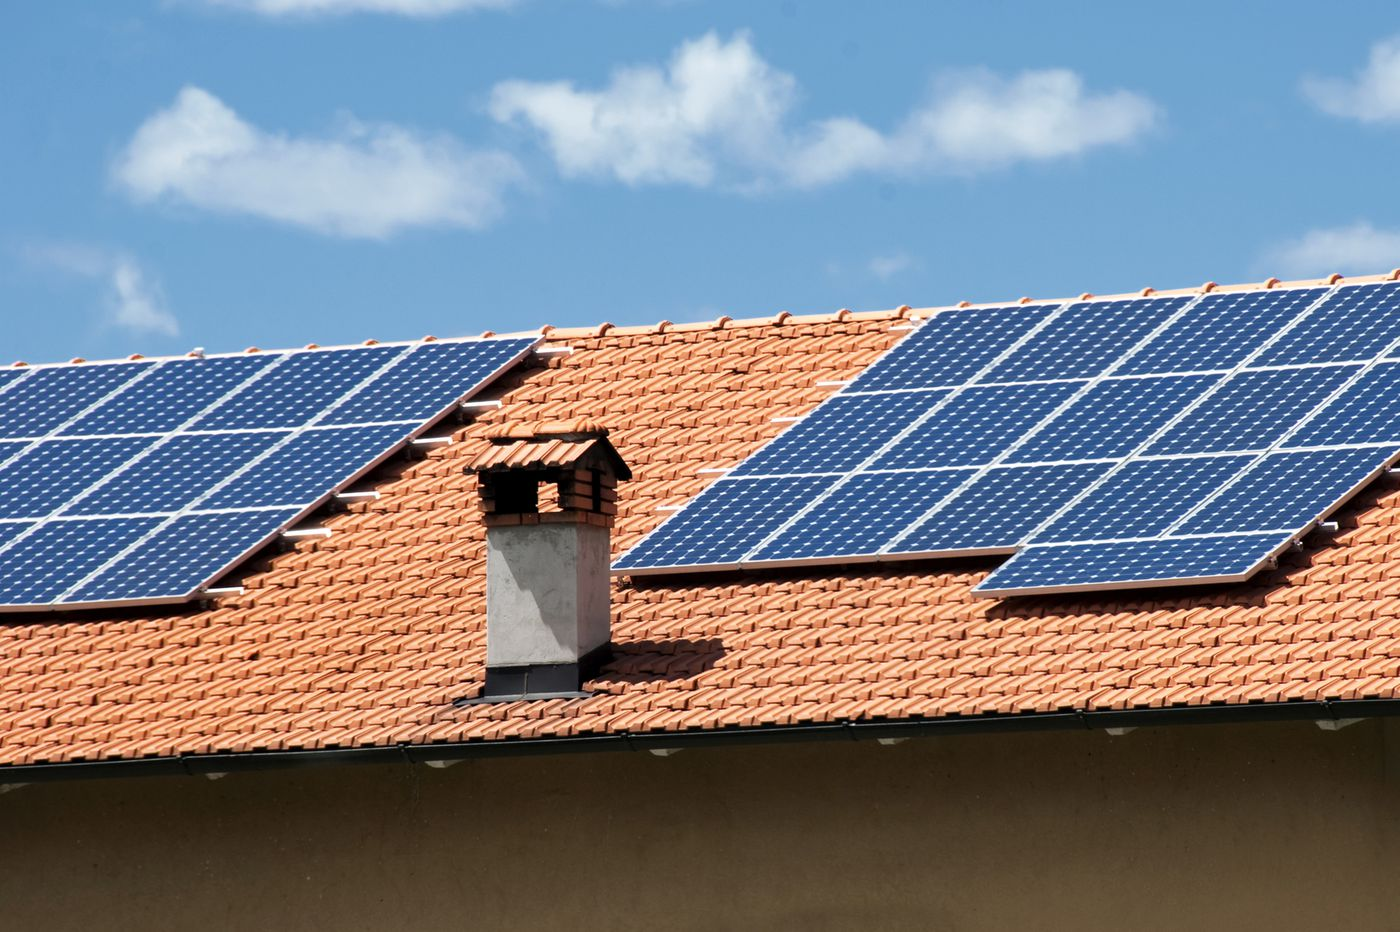 On year's longest day, Philly energy agency enlists homeowners to install solar